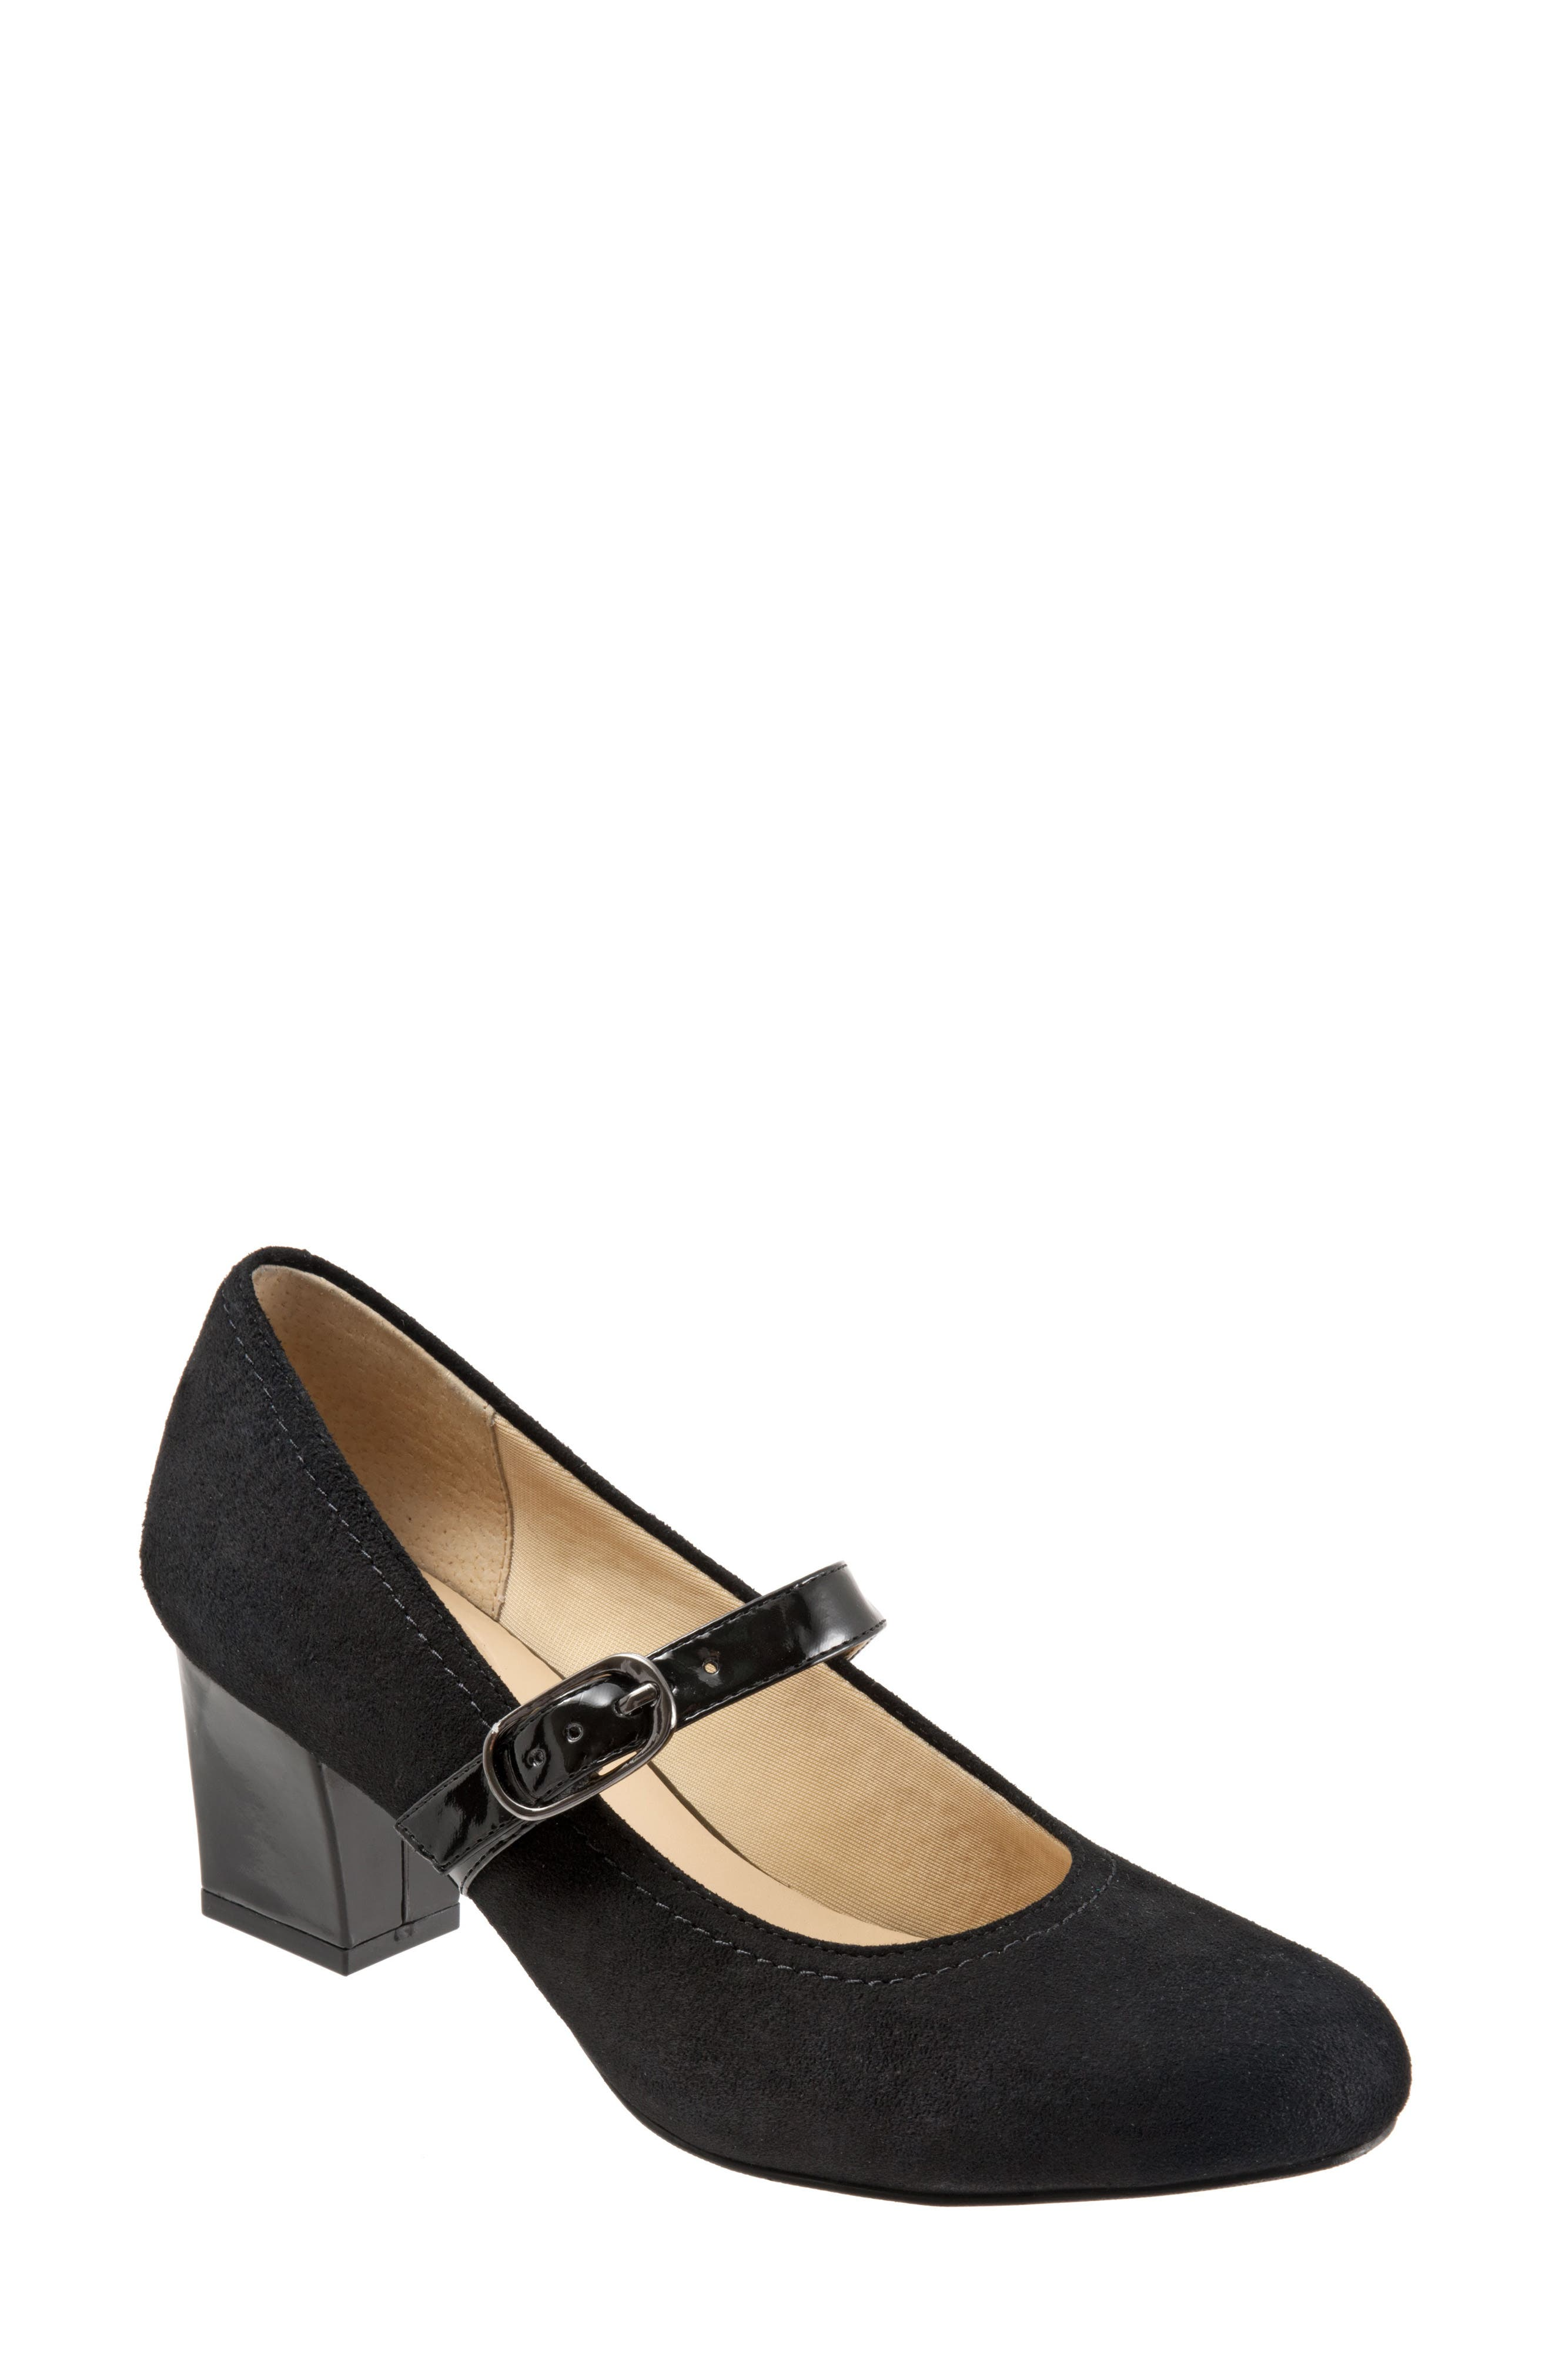 TROTTERS, 'Candice' Mary Jane Pump, Alternate thumbnail 3, color, BLACK SUEDE